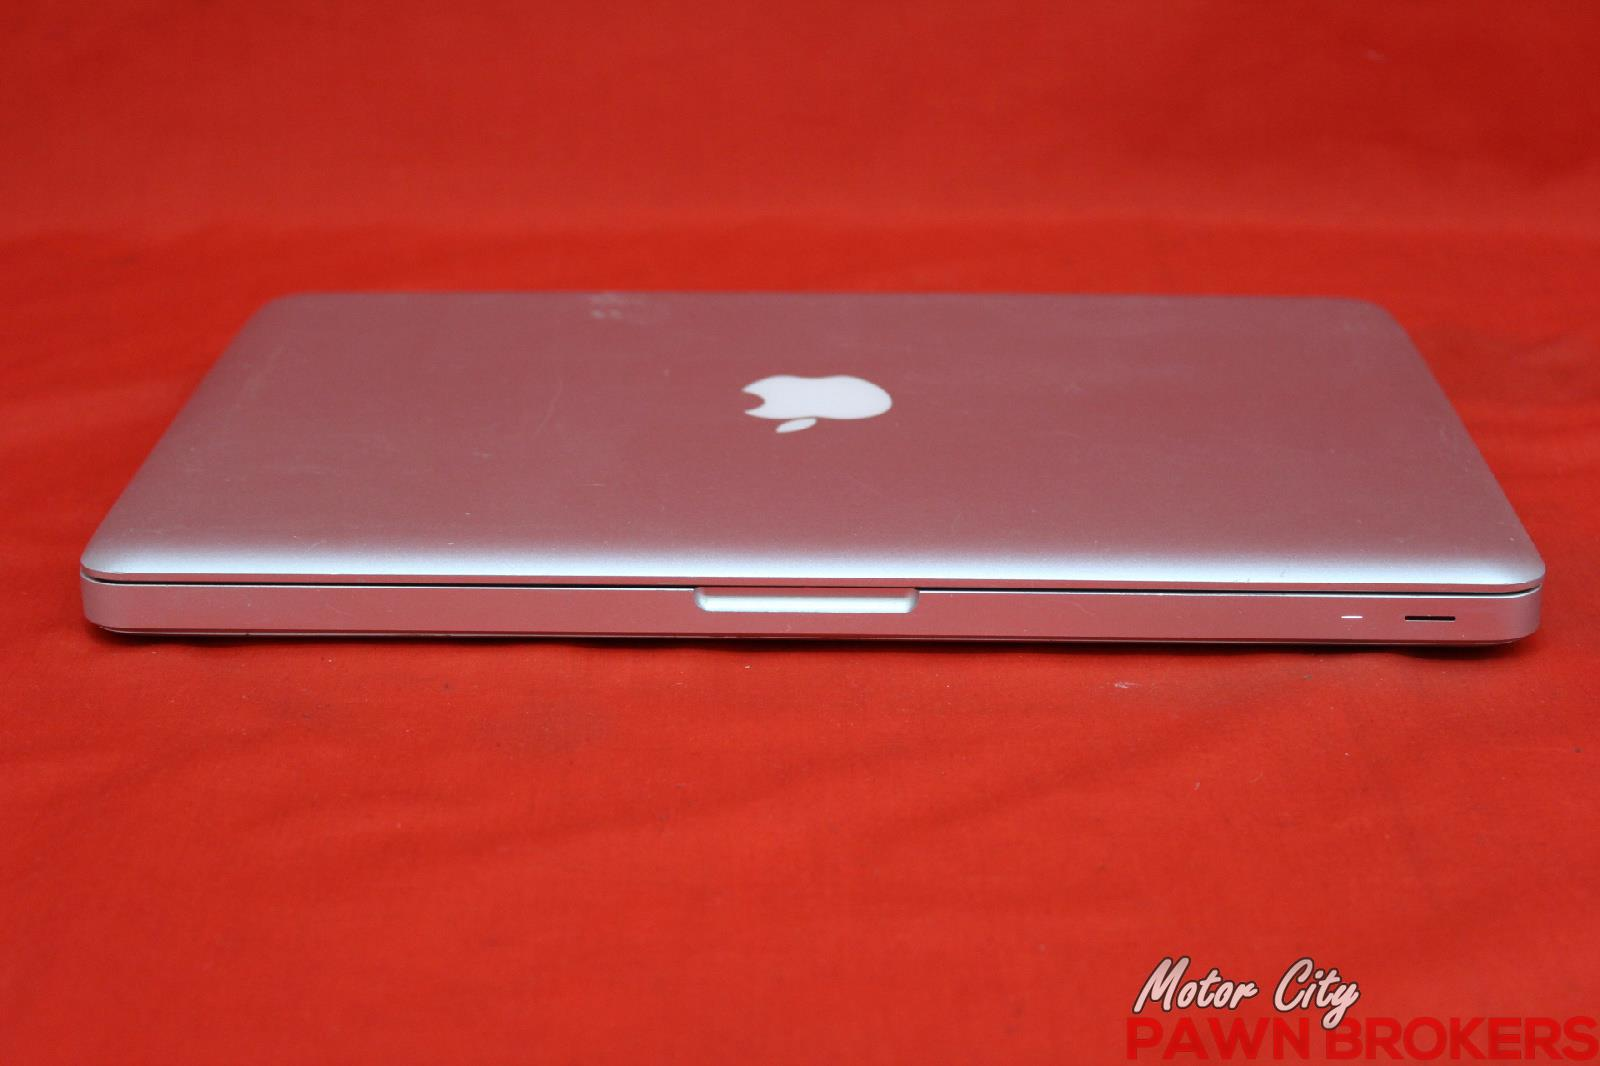 Apple macbook pro mc374ll a 13 3 intel core 2 duo 2 for Motor city pawn brokers roseville mi